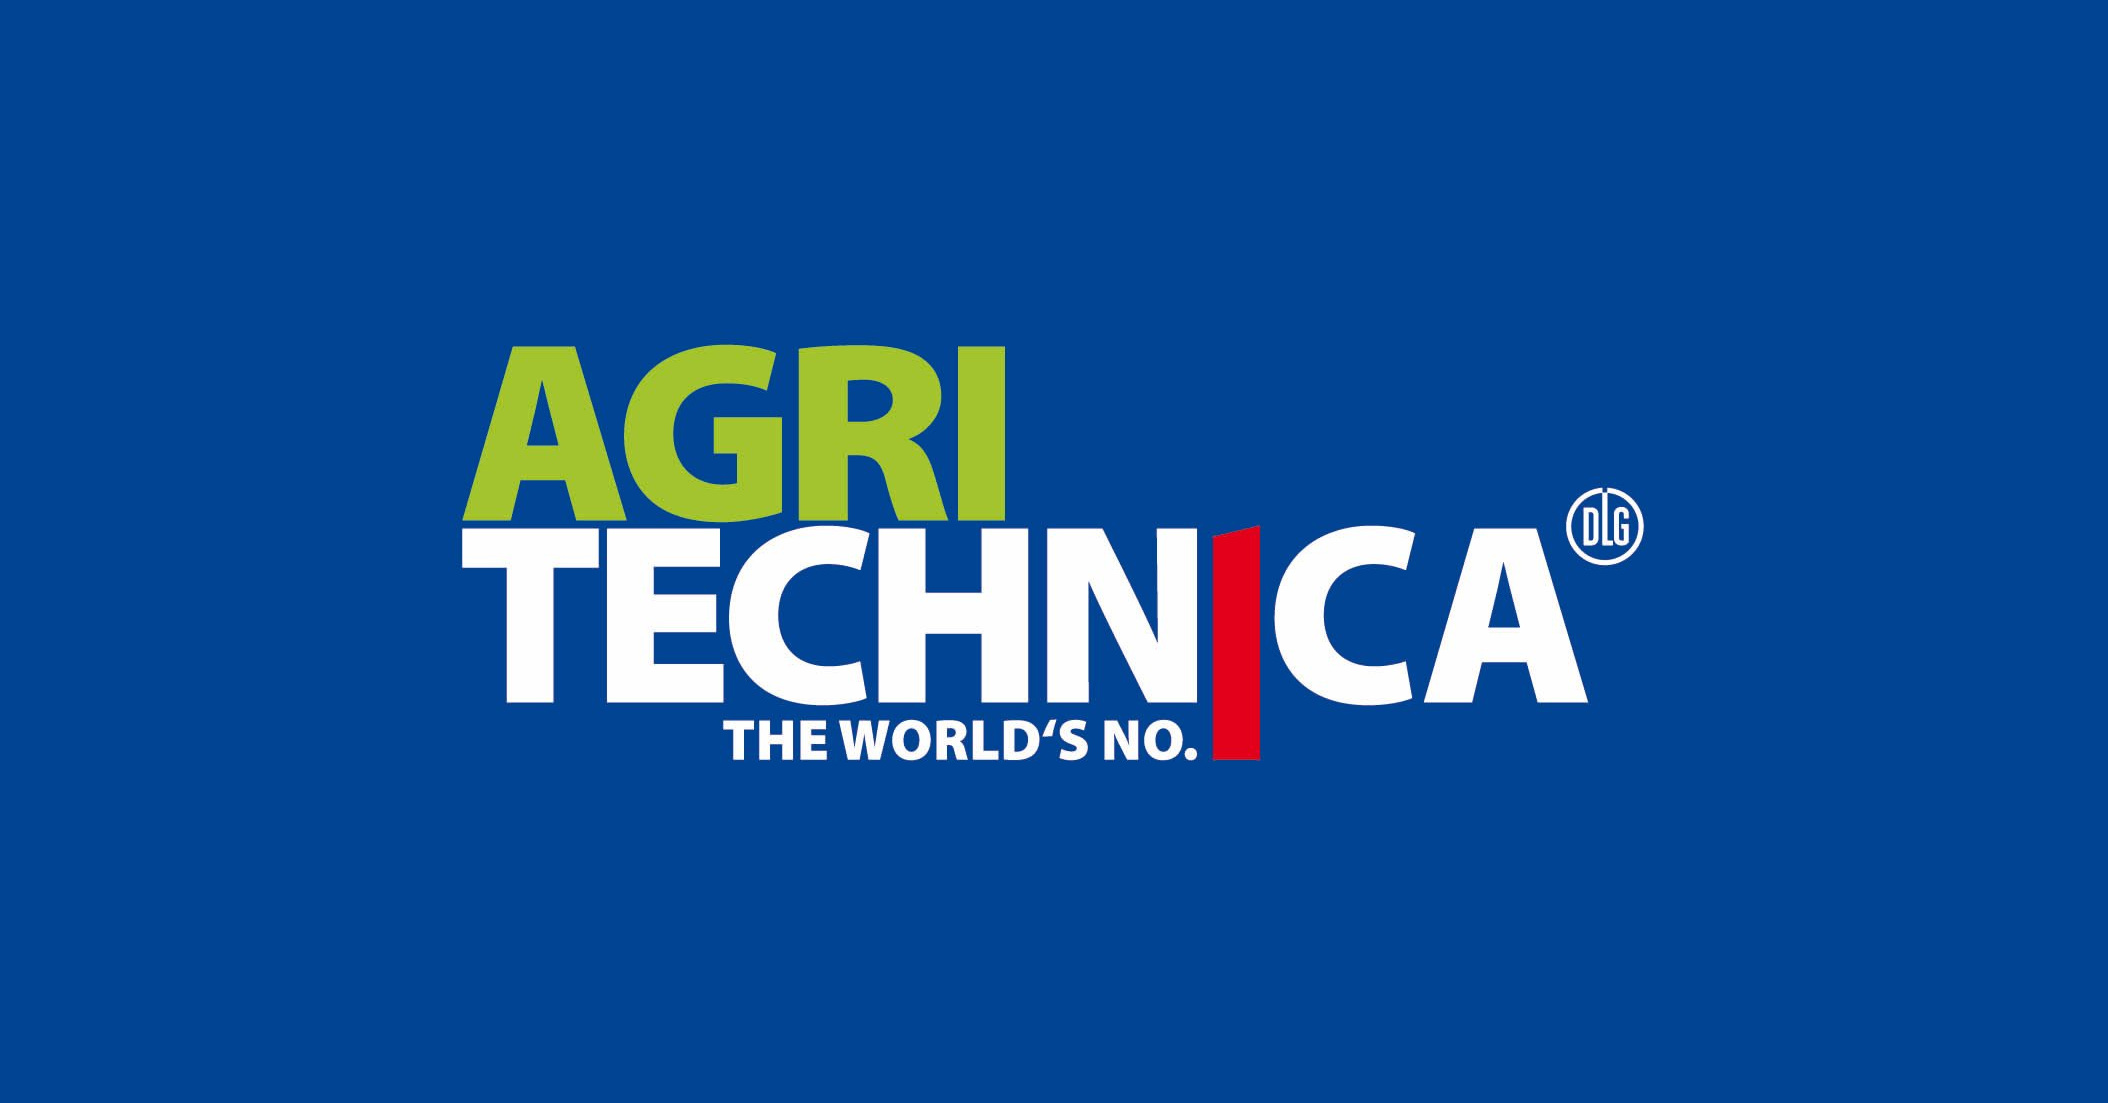 Agritechnica World S Leading Trade Fair For Agricultural Machinery Made By Dlg 27 Feb 5 Mar 2022 In Hanover Germany Agritechnica